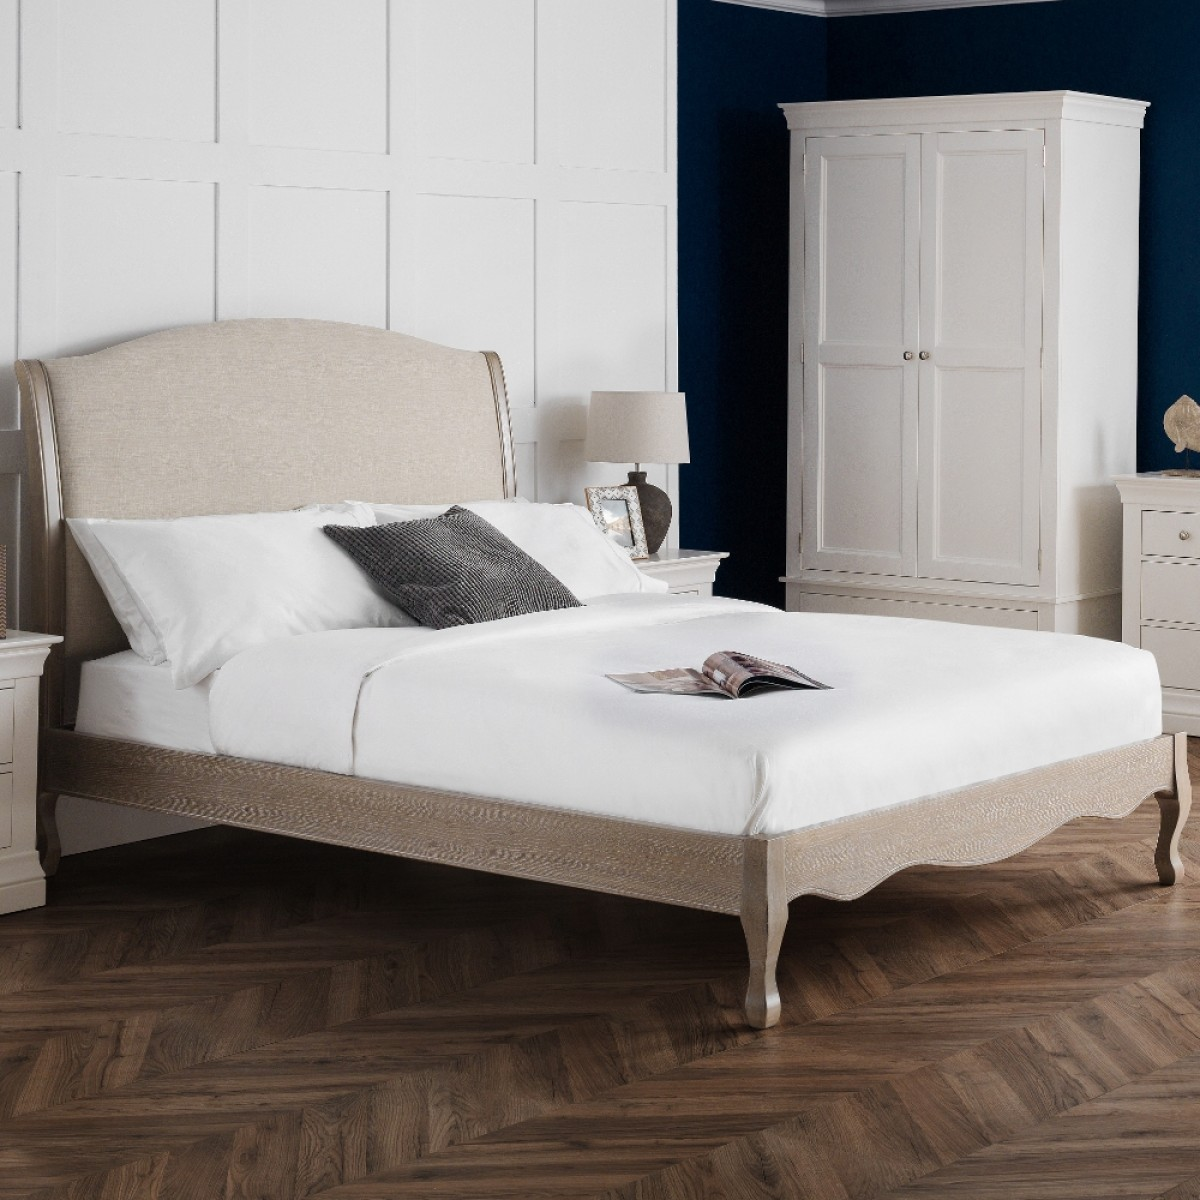 Camille Oatmeal Fabric and Oak Wooden Bed